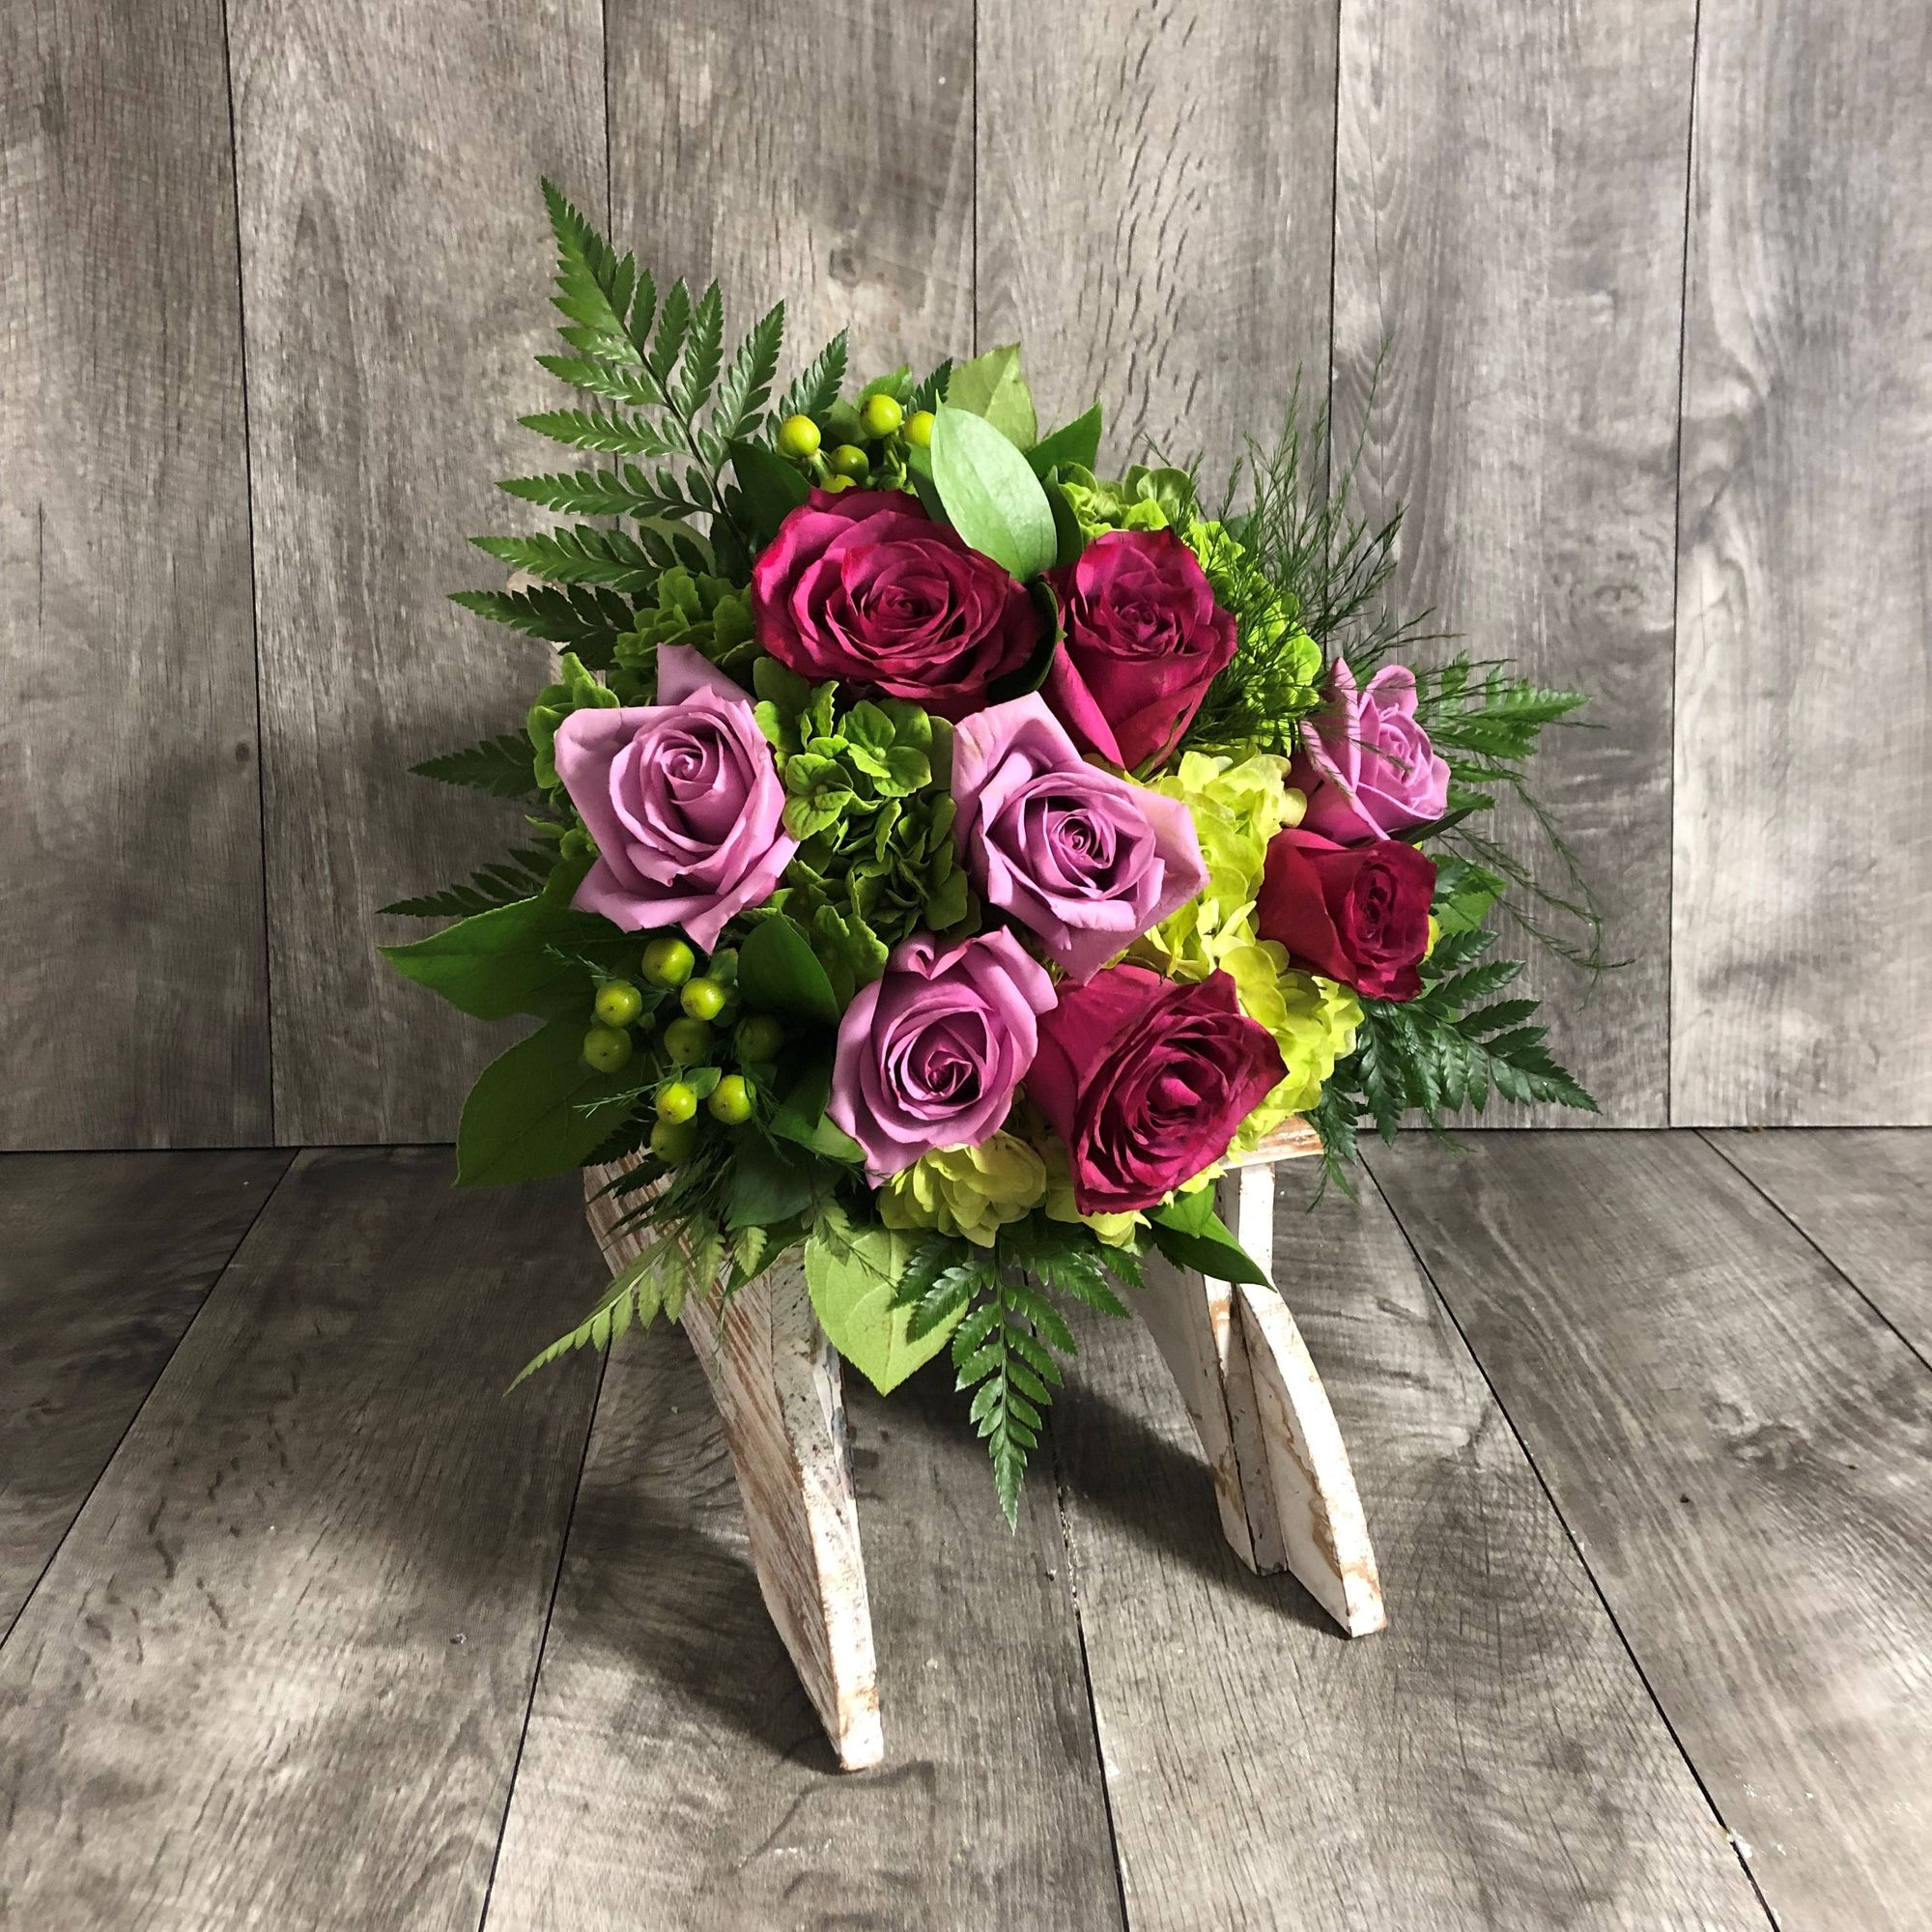 Green hydrangea coolwater roses and blueberry roses